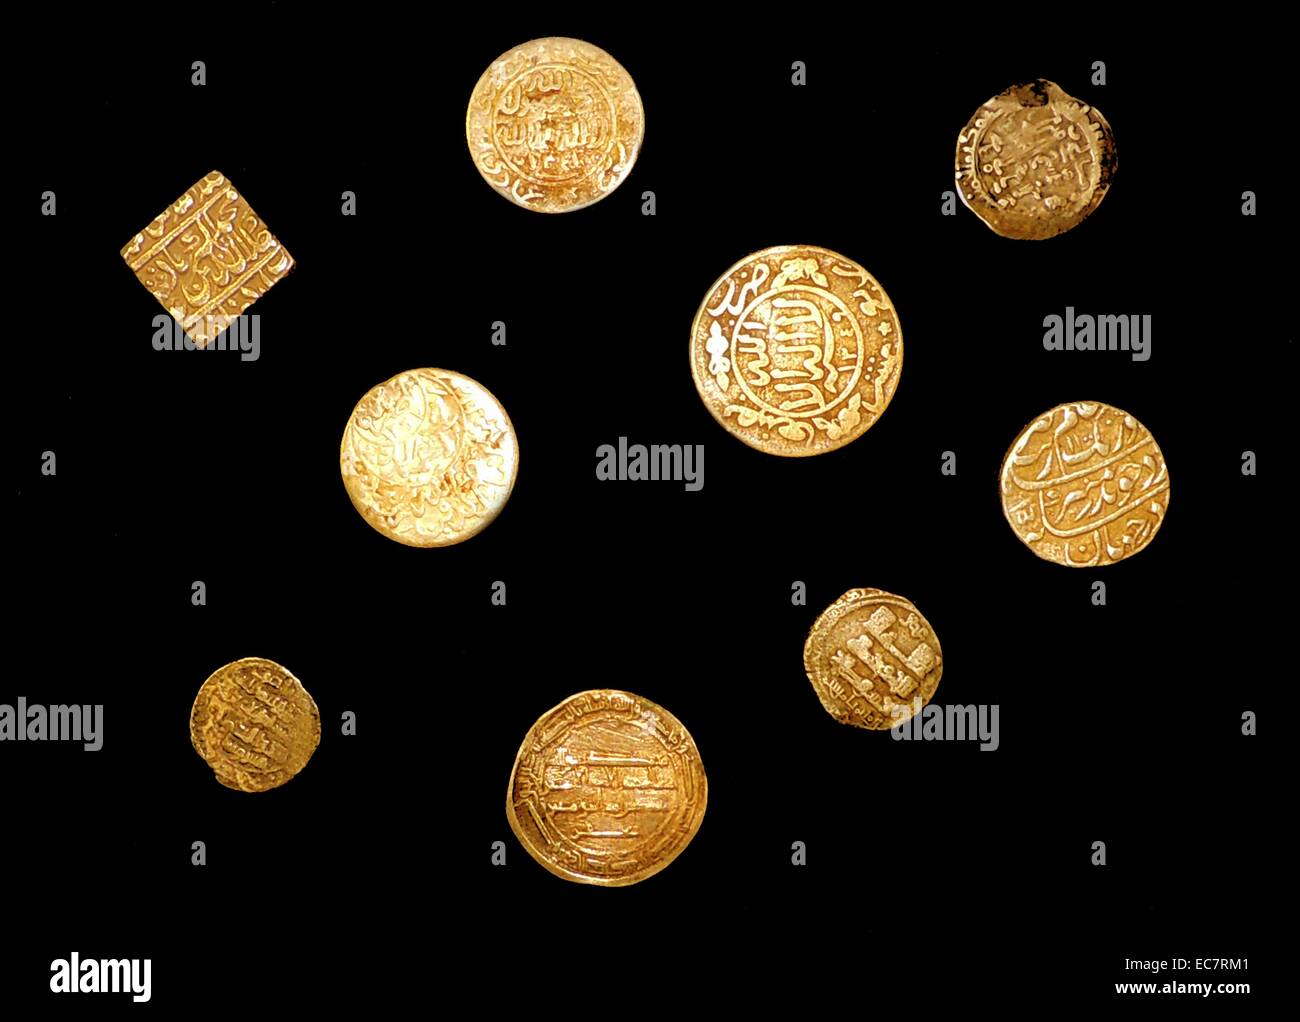 A collection of Antique Islamic Coins. - Stock Image